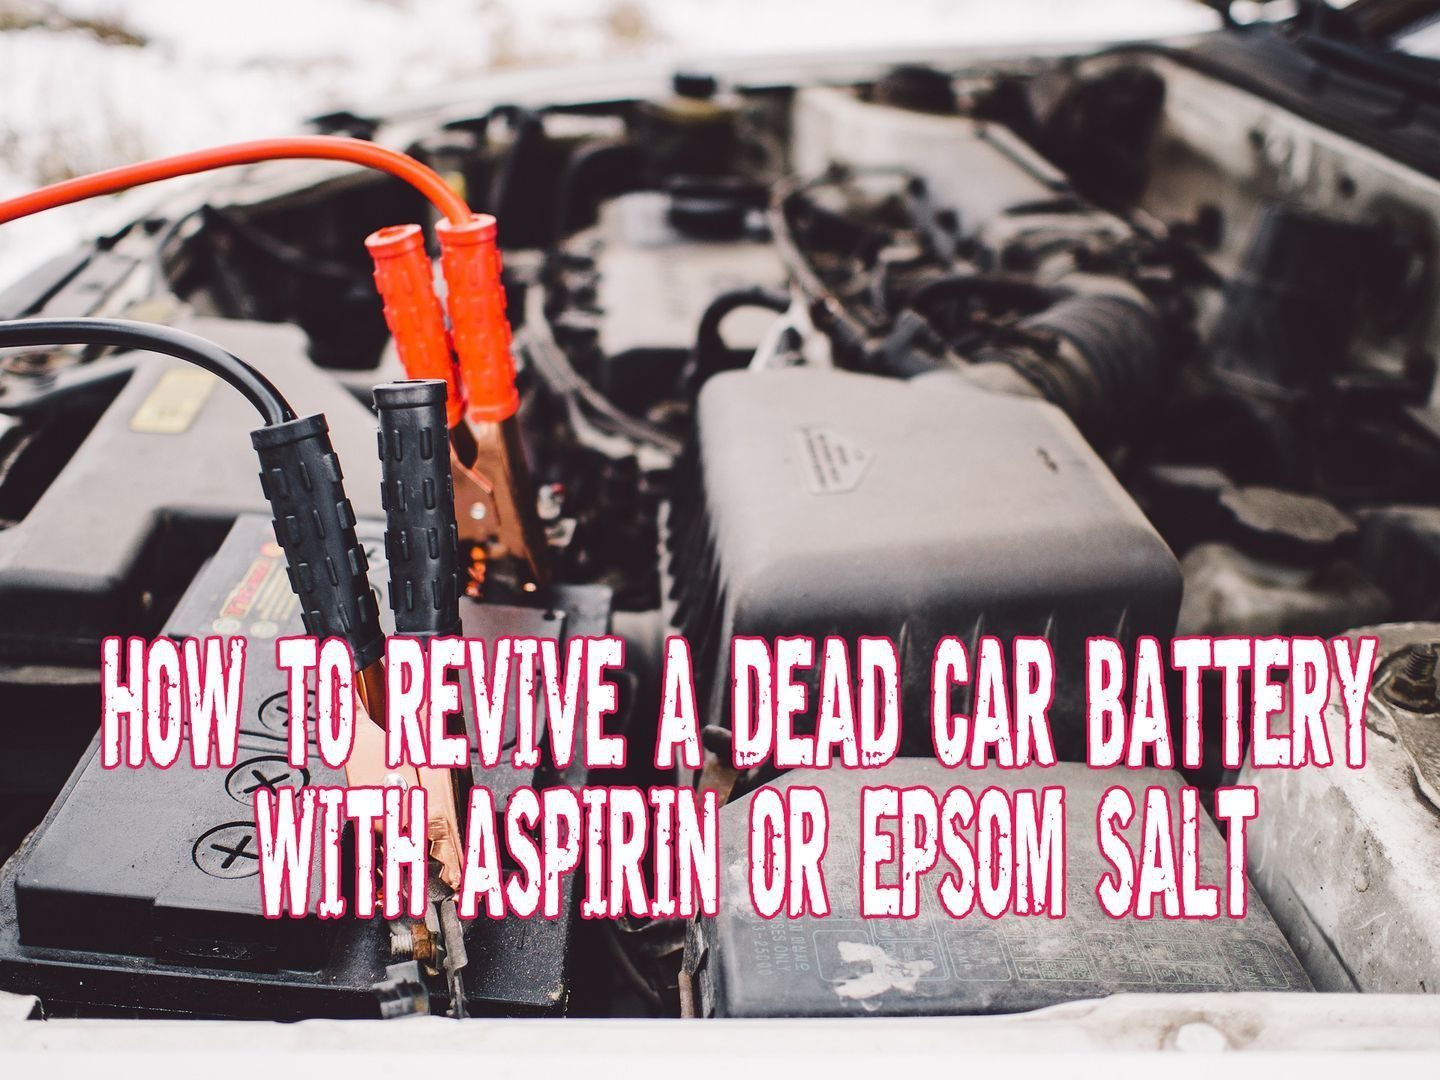 How To Revive A Dead Car Battery With Aspirin Or Epsom